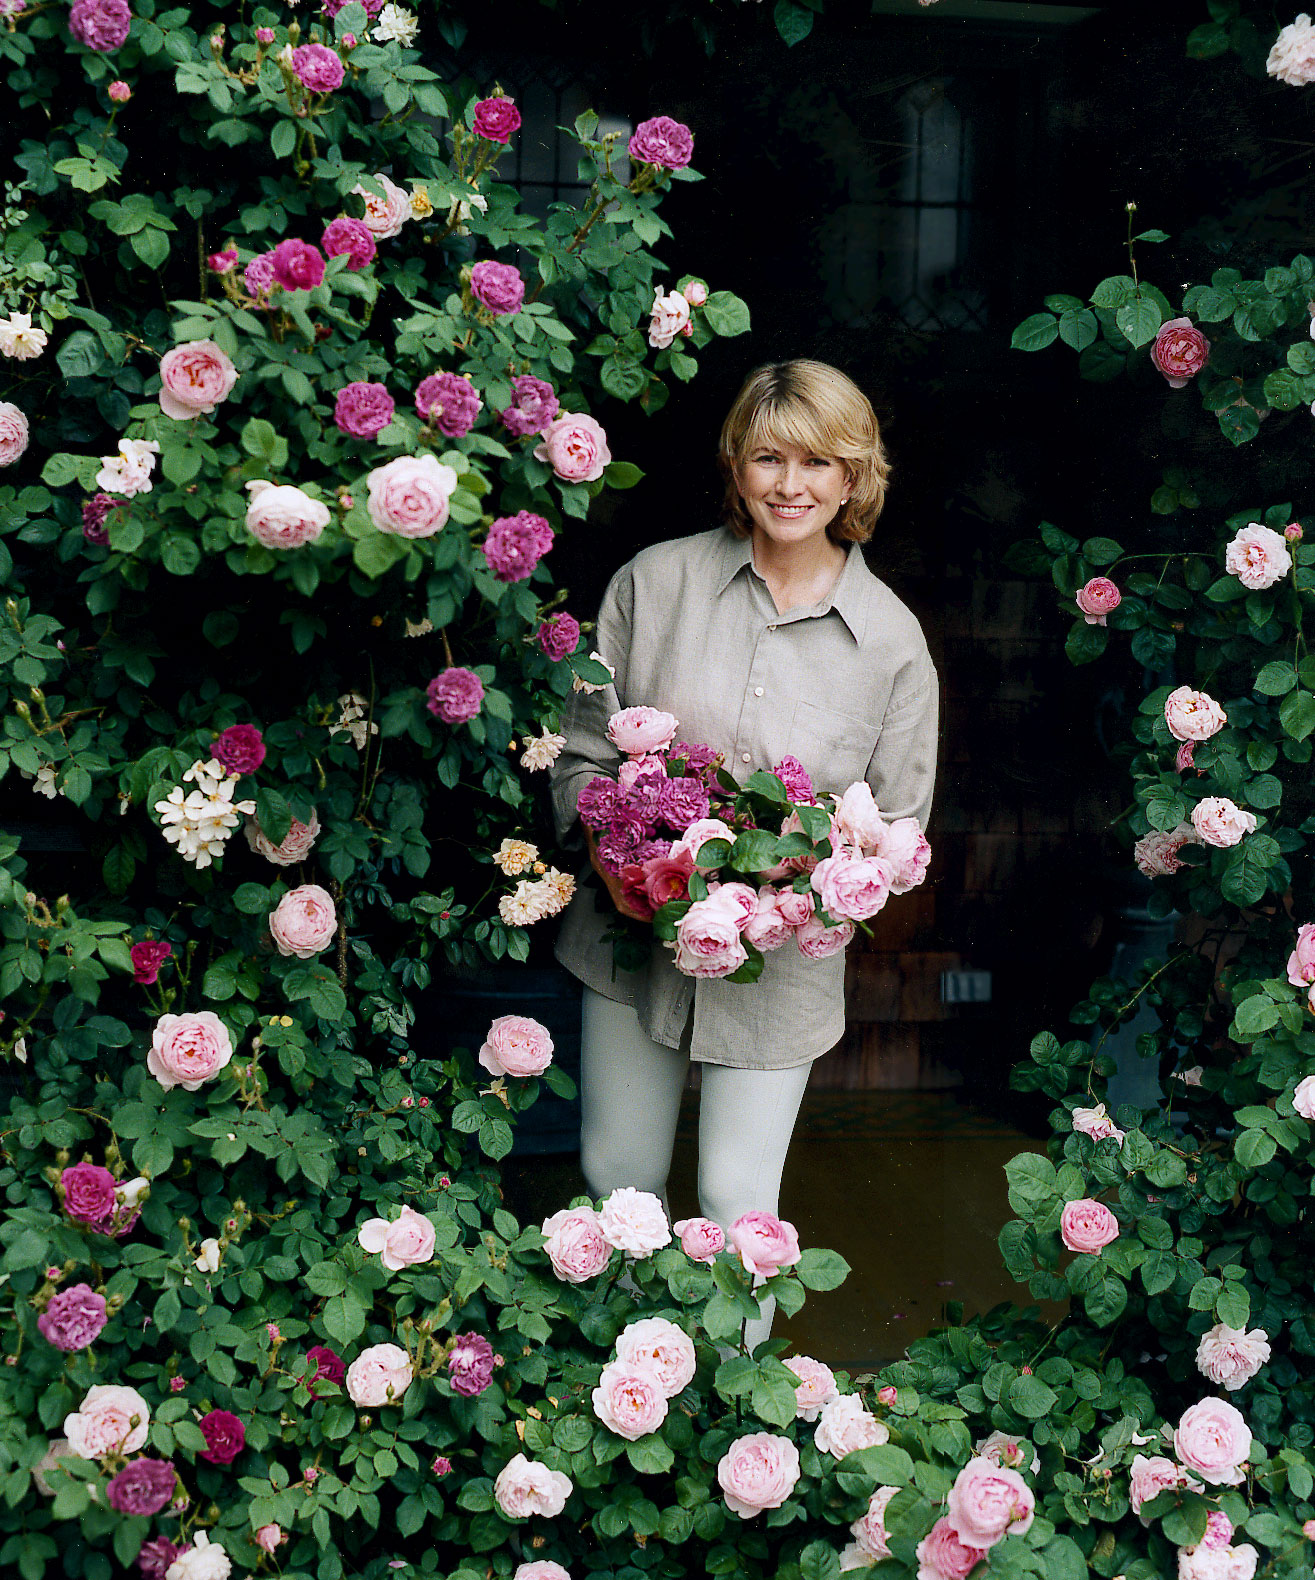 martha with roses in garden